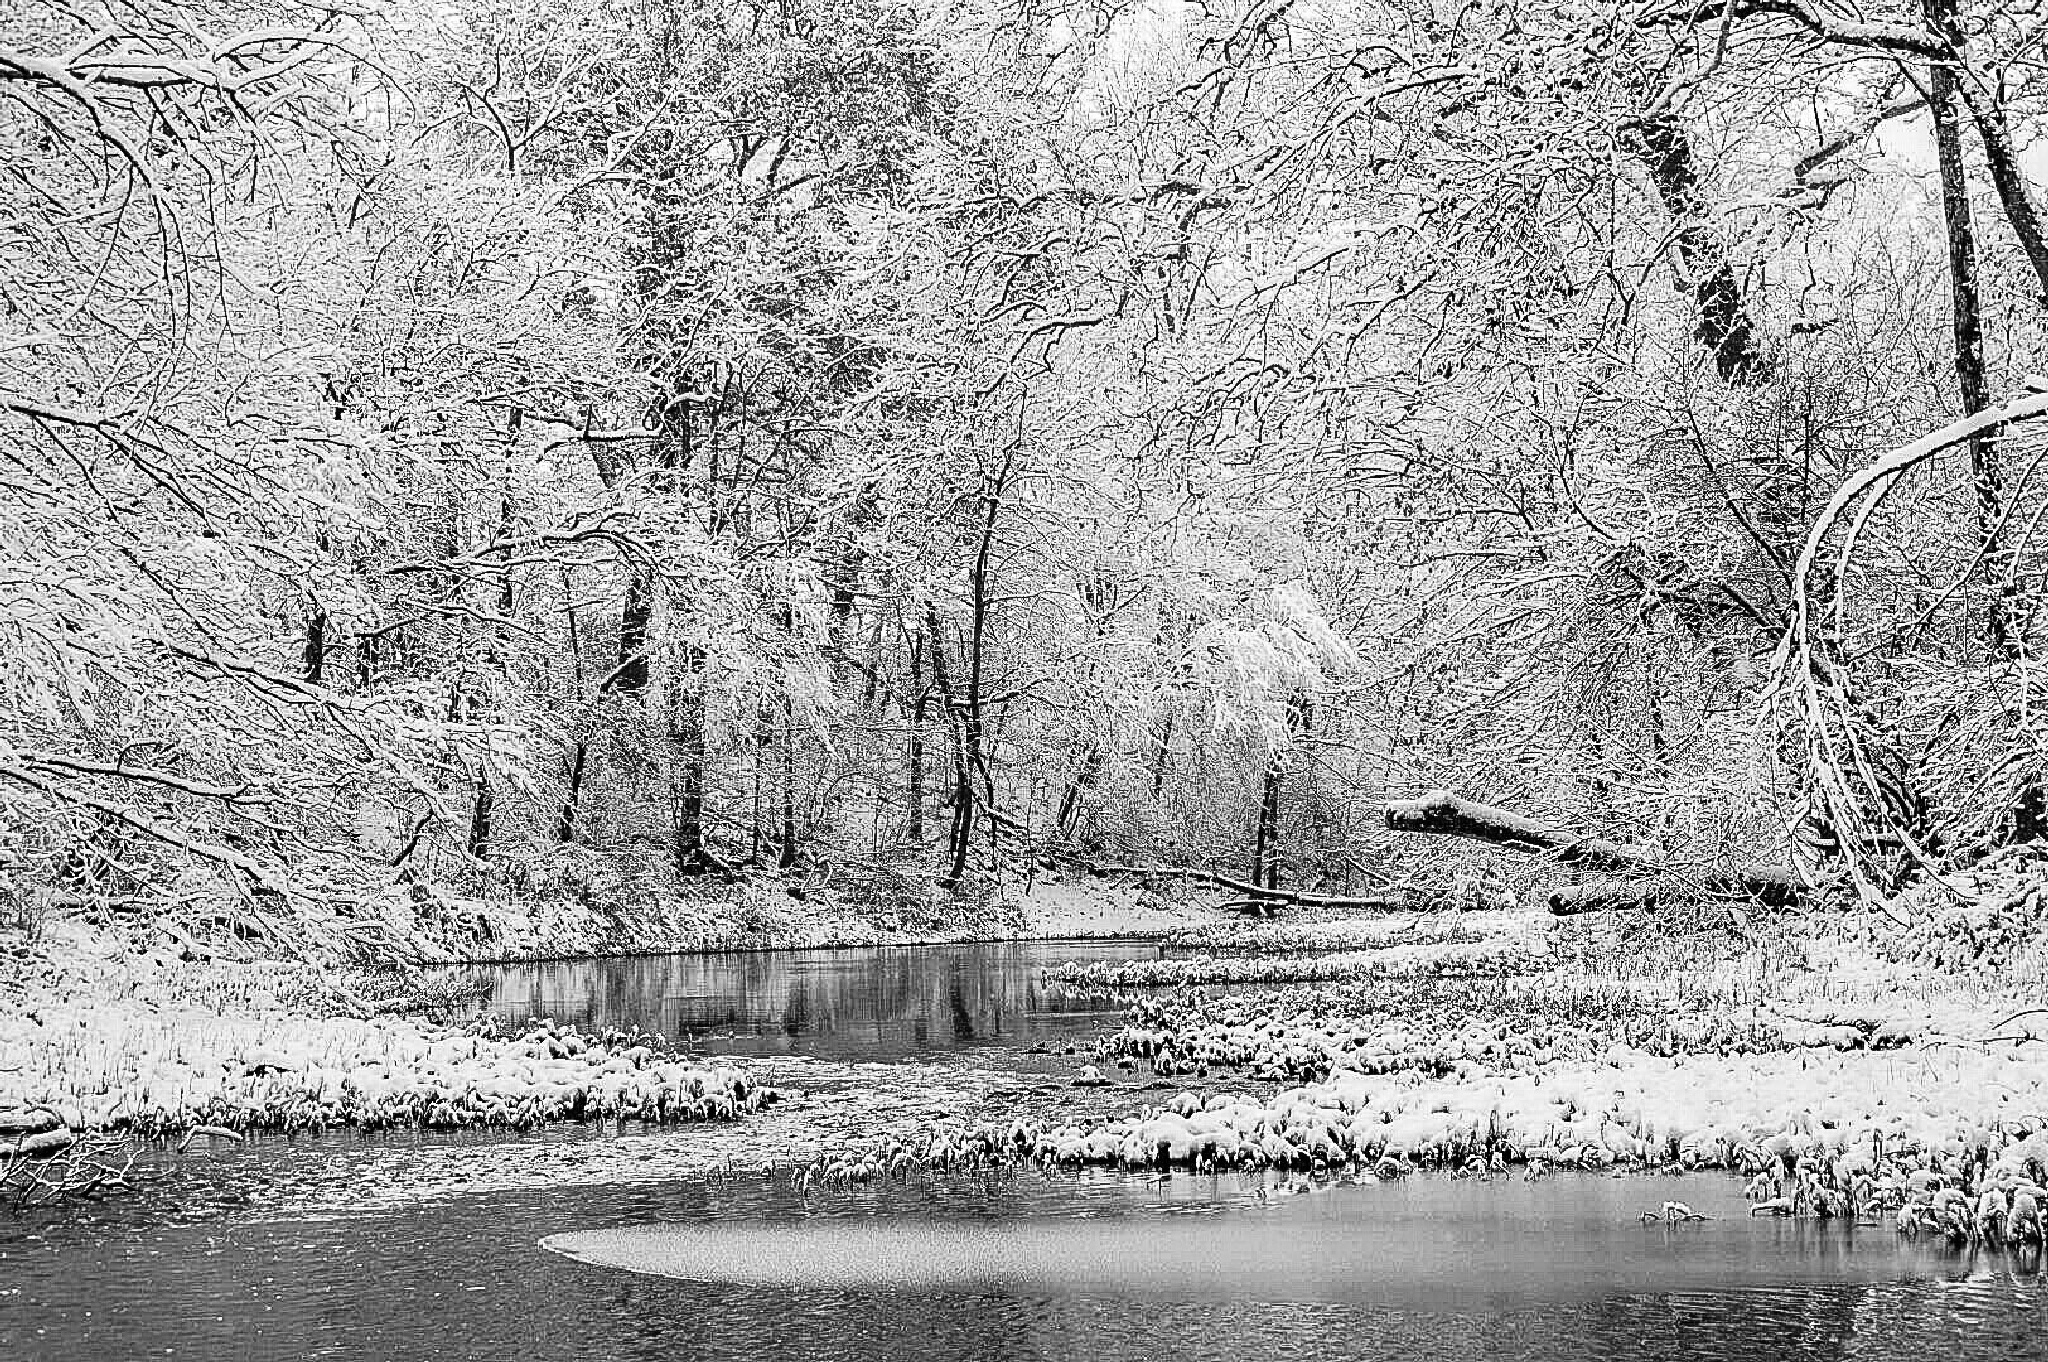 Winter on the Darby  by Tom Kitchen